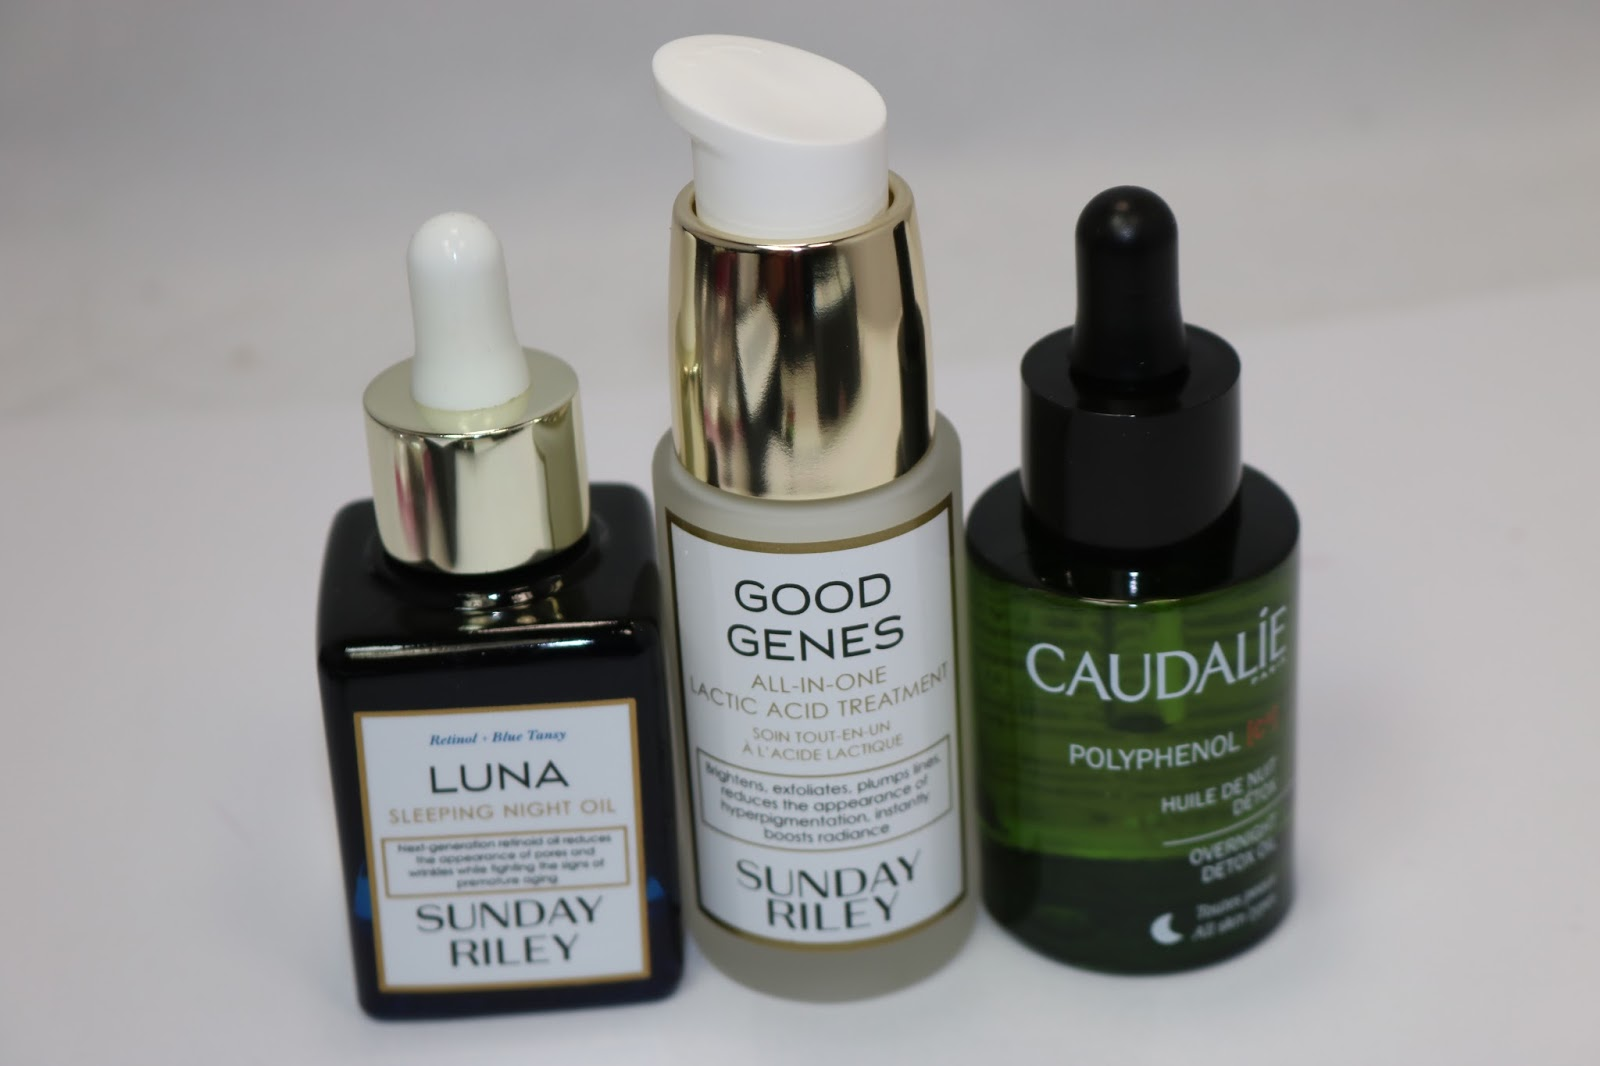 Sunday Riley Luna Sleeping Night Oil, Sunday Riley Good Genes Lactic Acid Treatment, Caudalie Polyphenol Detox Oil